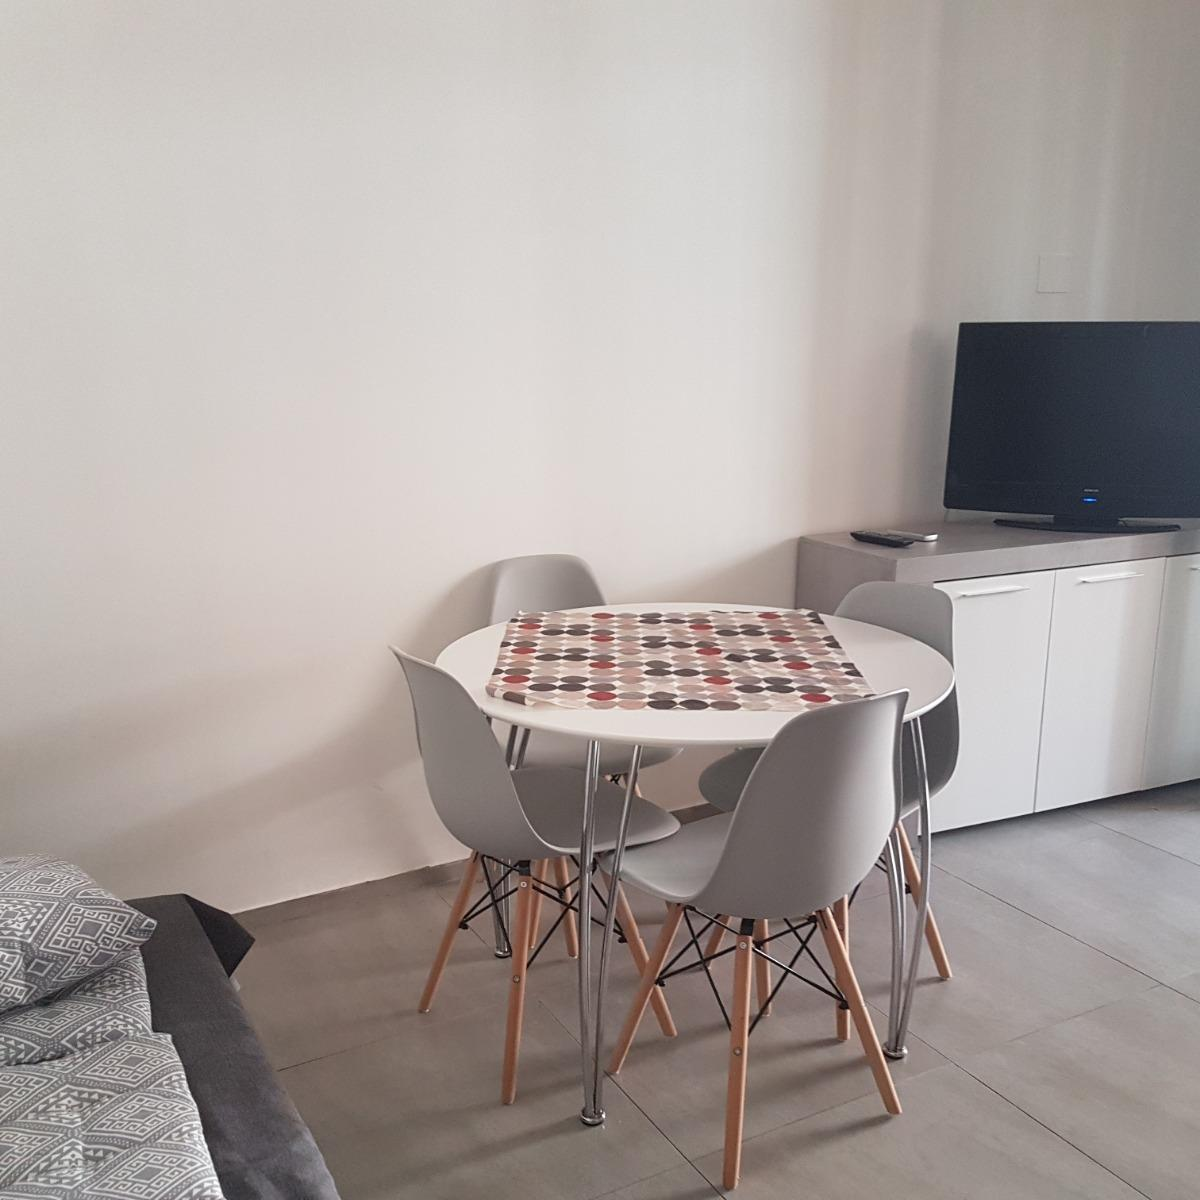 new 10 apartment 4 adults 2